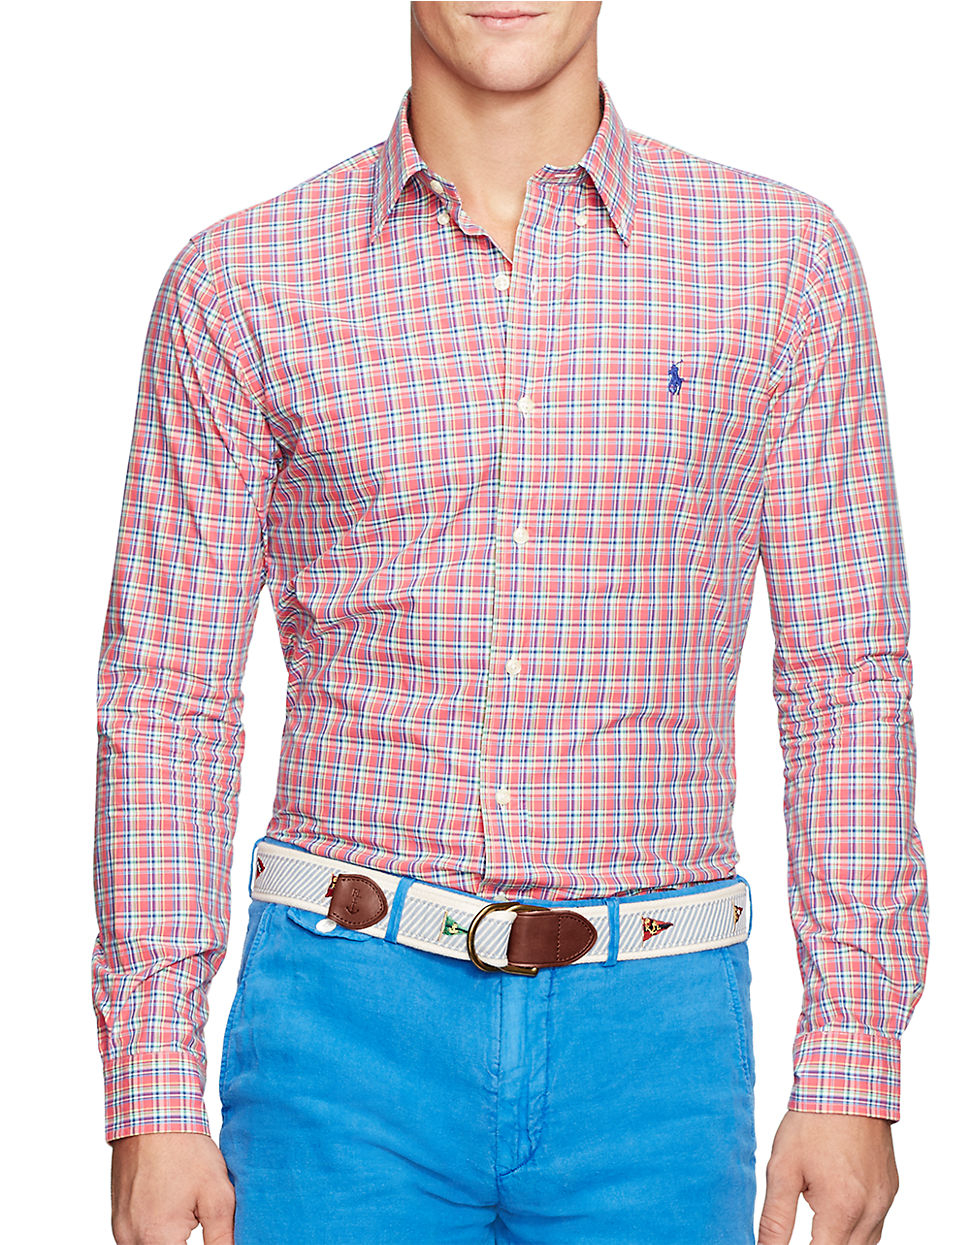 087434ccf Polo Ralph Lauren Checked Poplin Shirt in Red for Men - Lyst